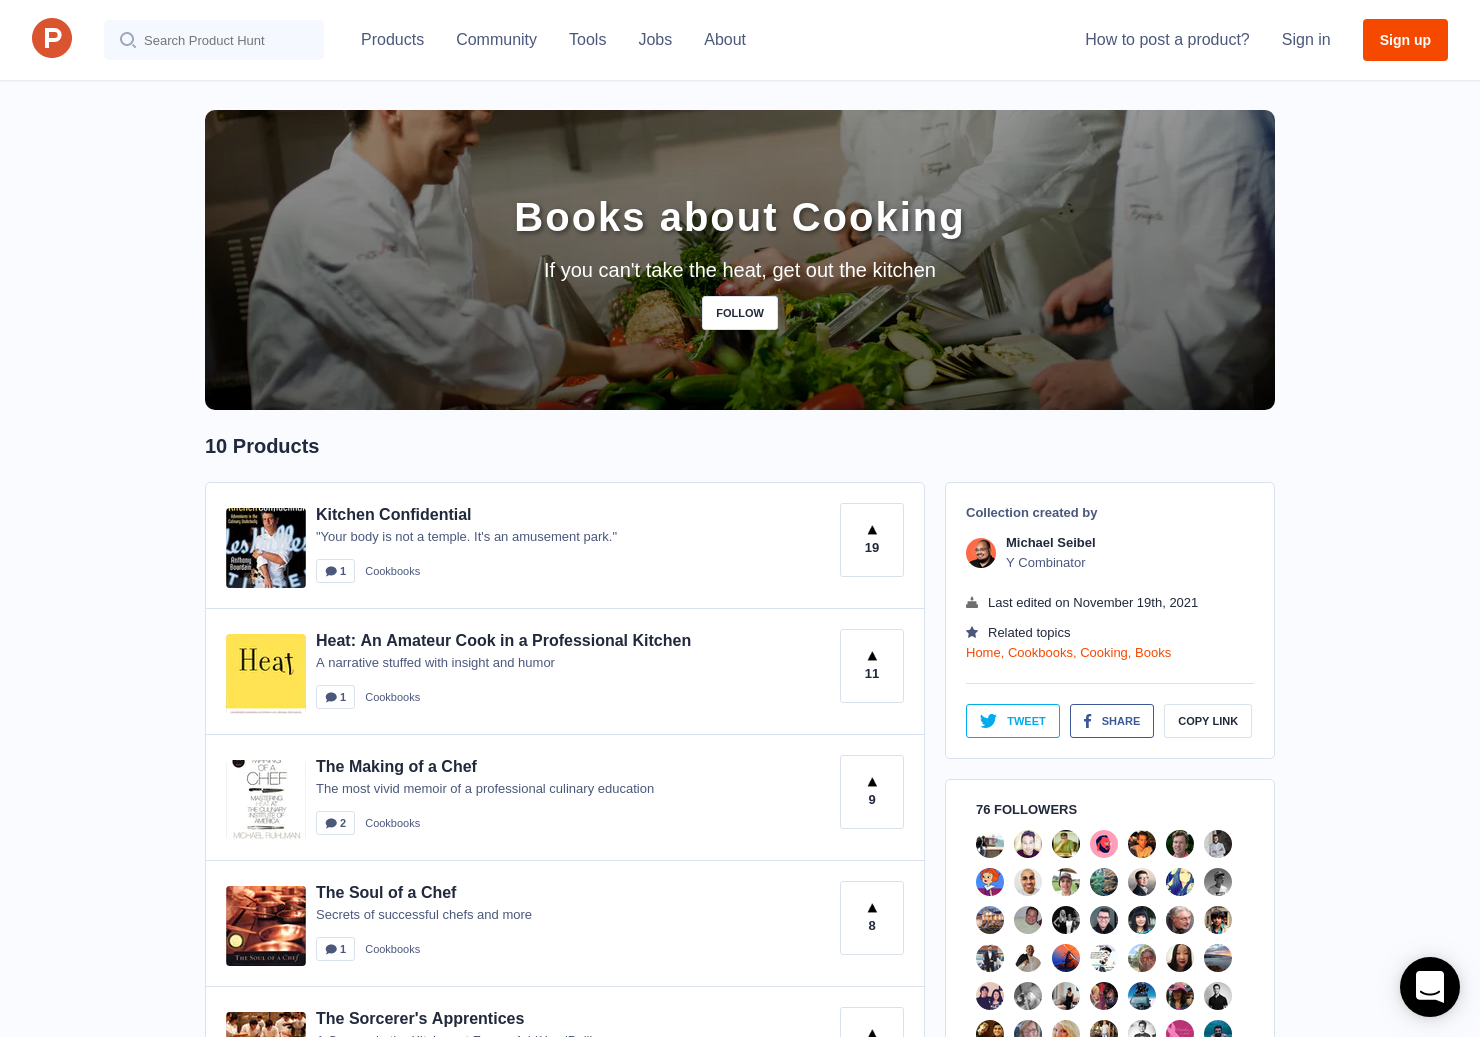 Books about Cooking by Michael Seibel - Product Hunt